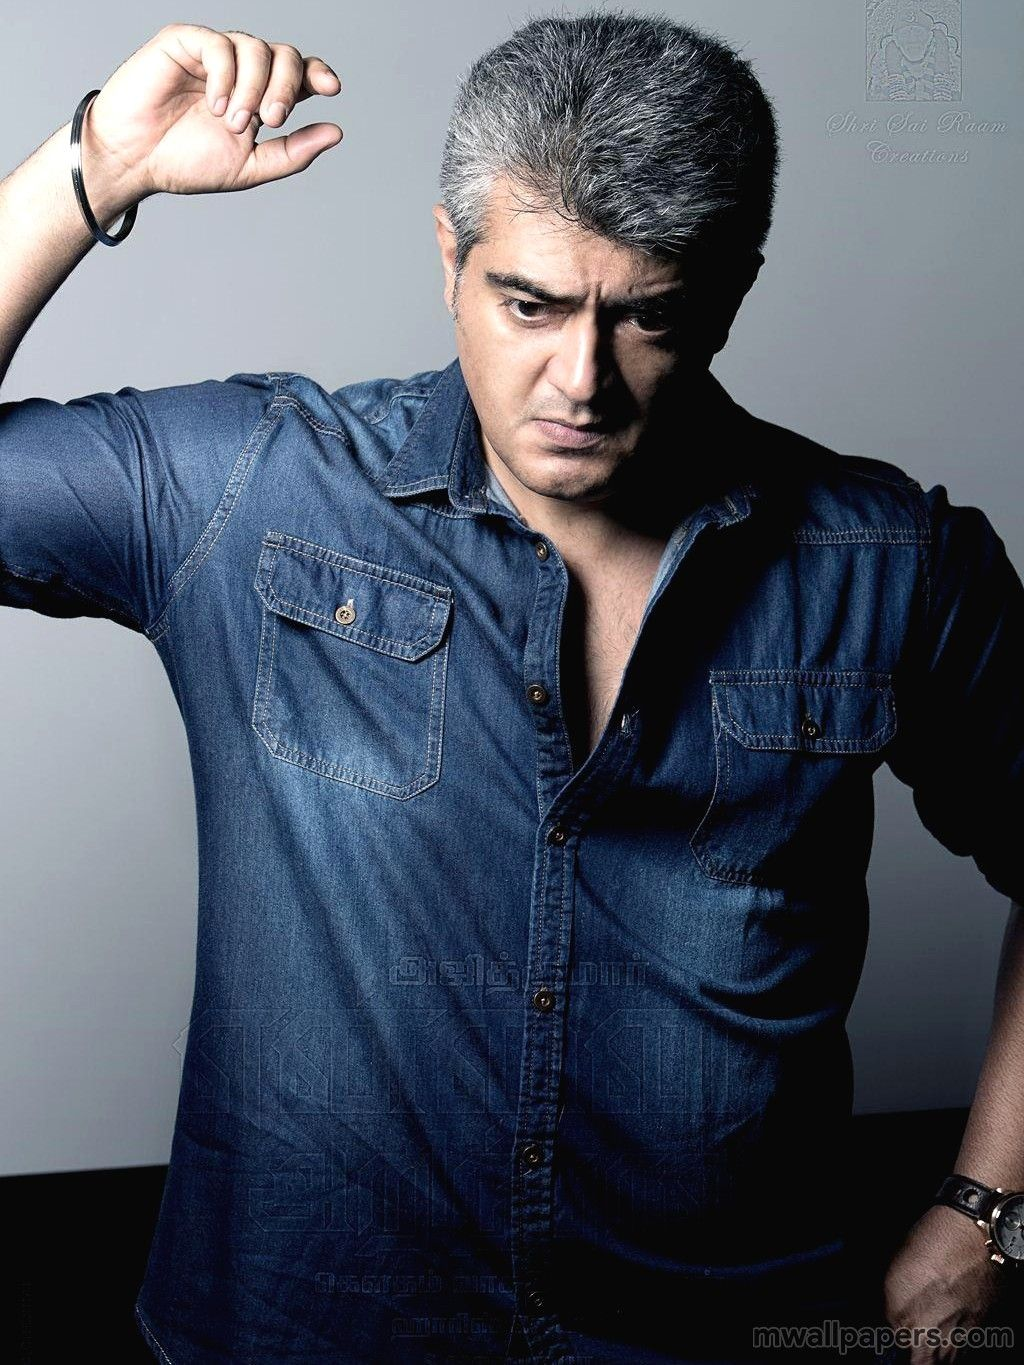 Download Ajith HD Images in 1080p HD quality to use as your 1024x1365